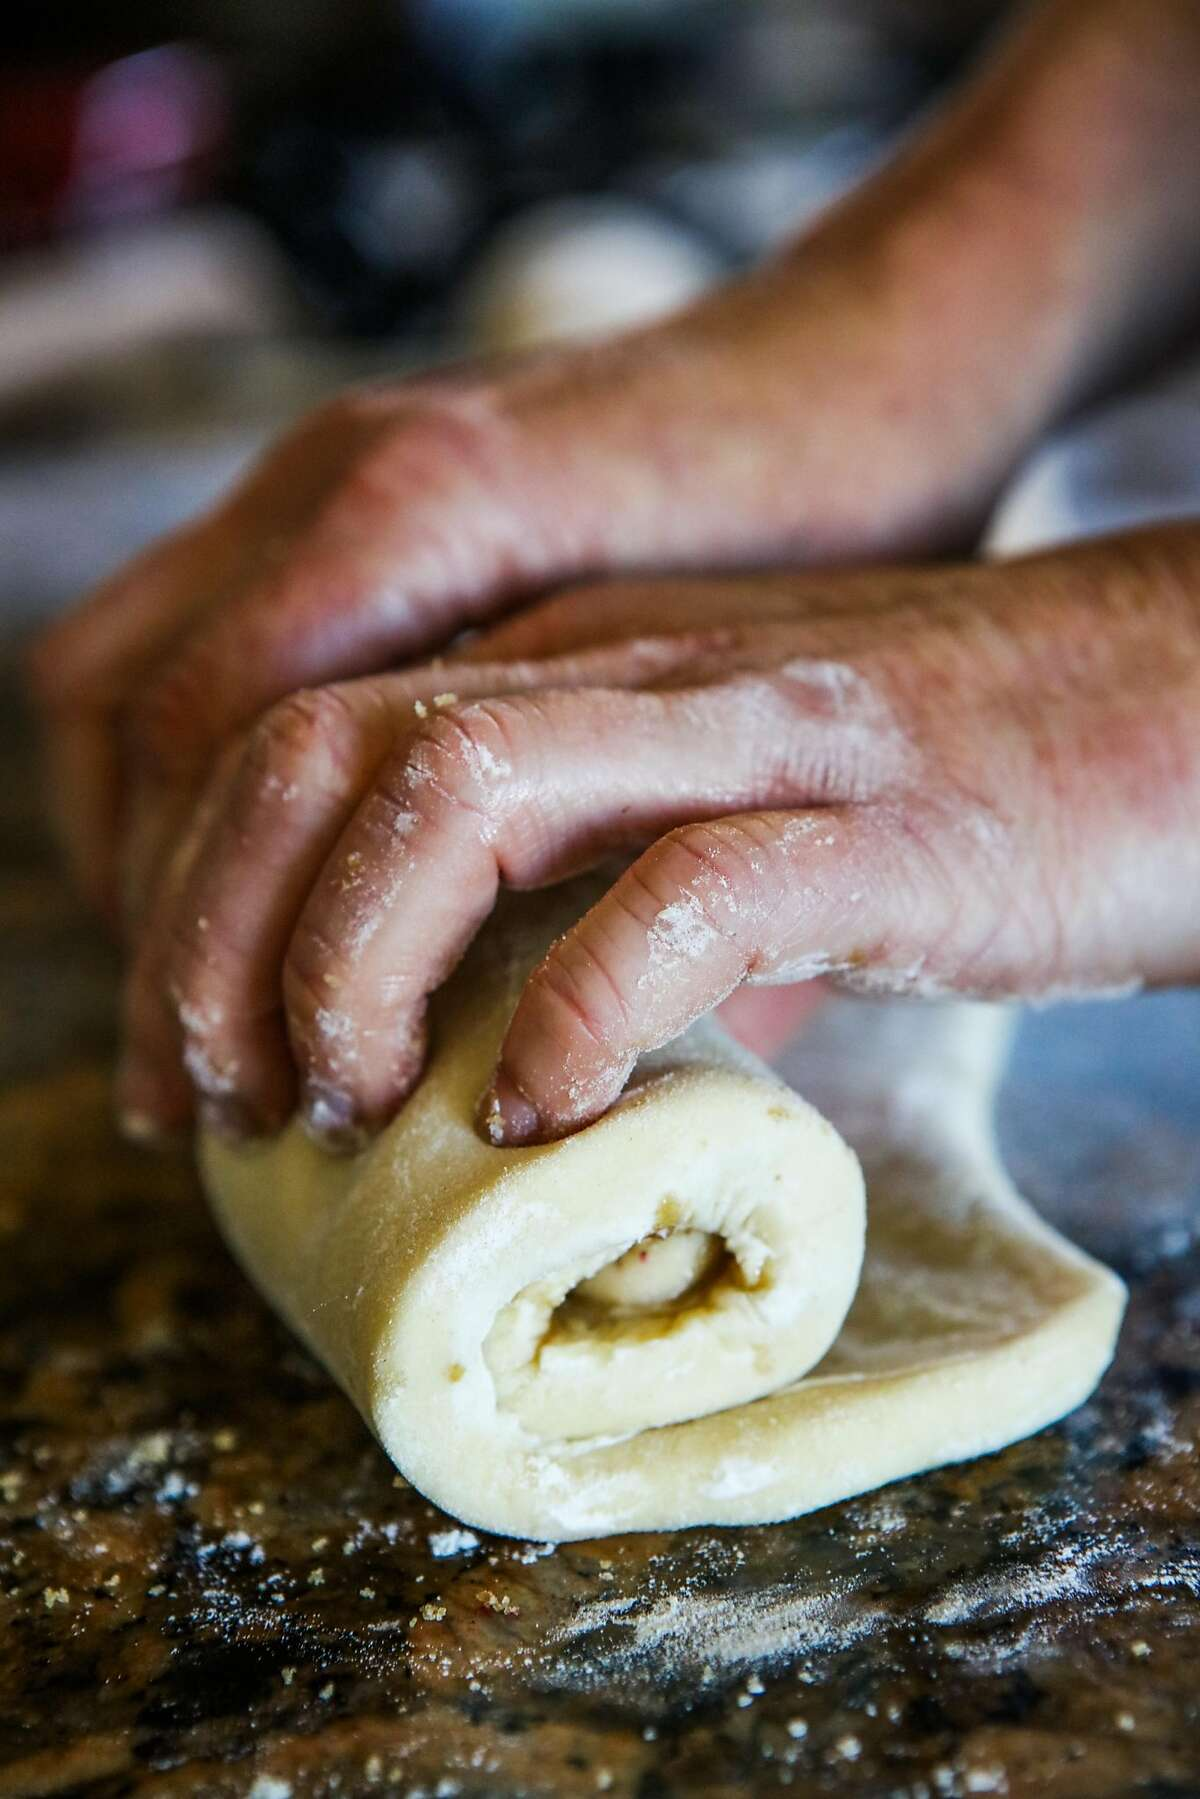 Pastry chef Brooke Mosley of Outerlands rolls the dough of strawberry-rhubarb sticky buns into a roll.